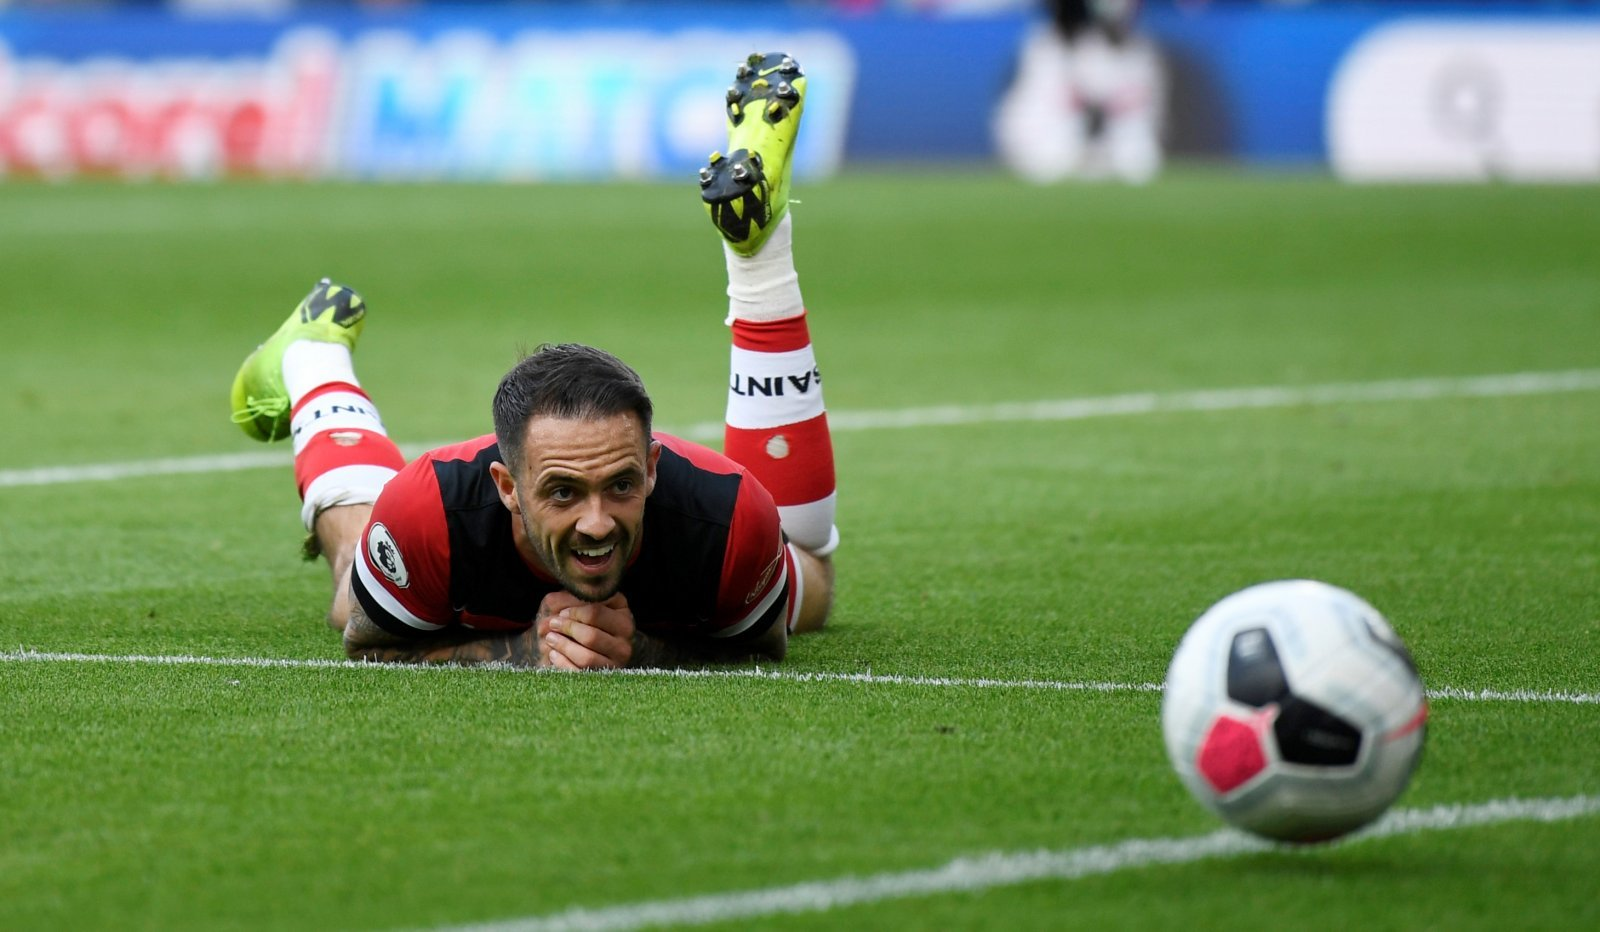 Southampton: Danny Ings reveals what is was like after Leicester City game